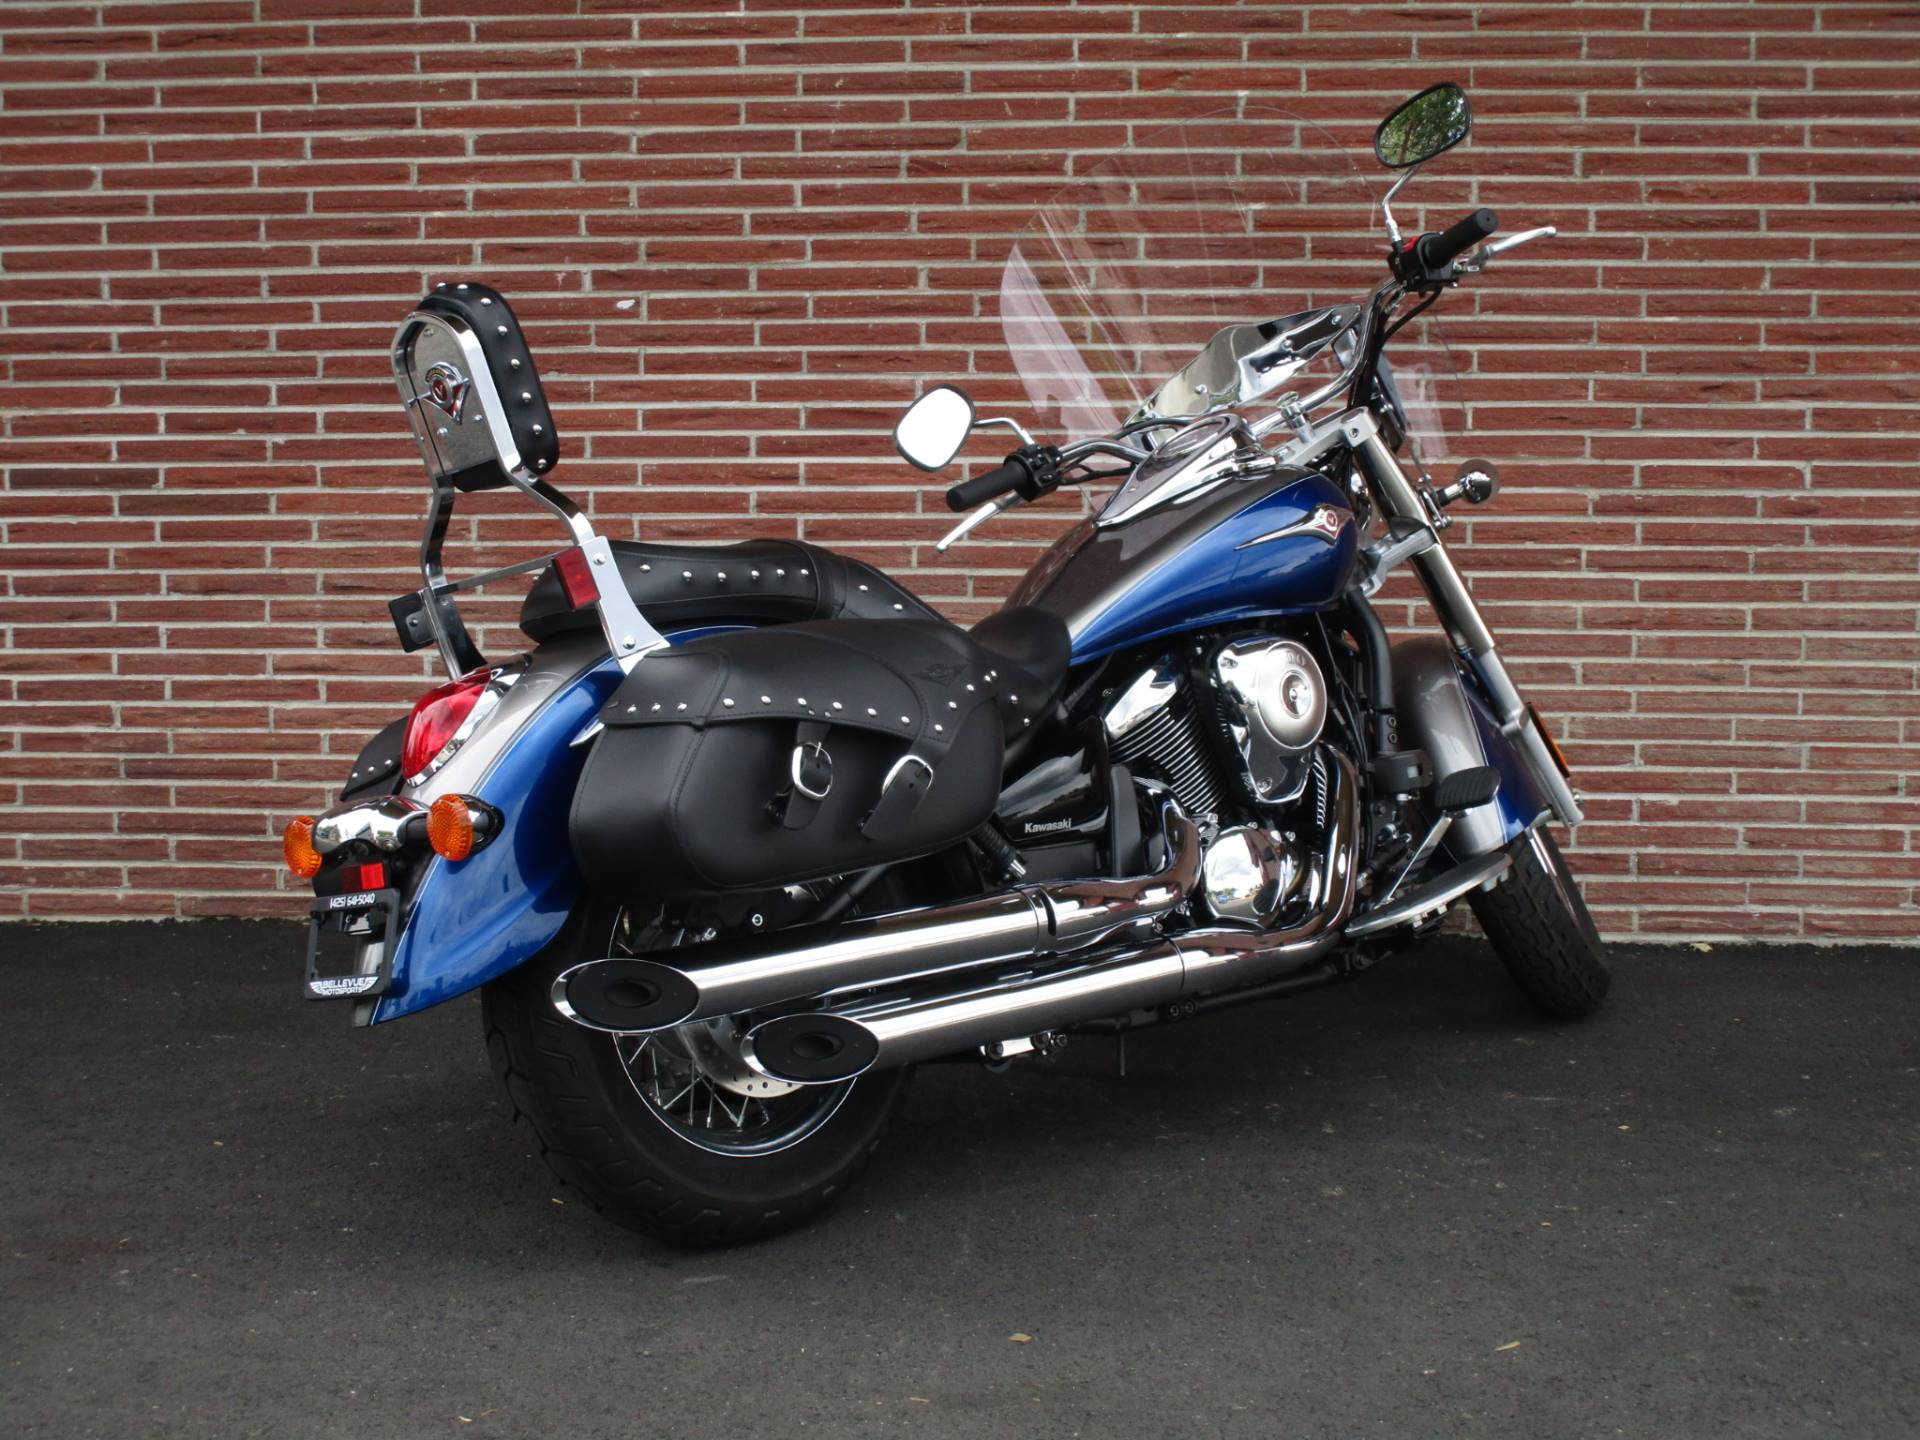 2019 Kawasaki Vulcan 900 Classic LT in Bellevue, Washington - Photo 5